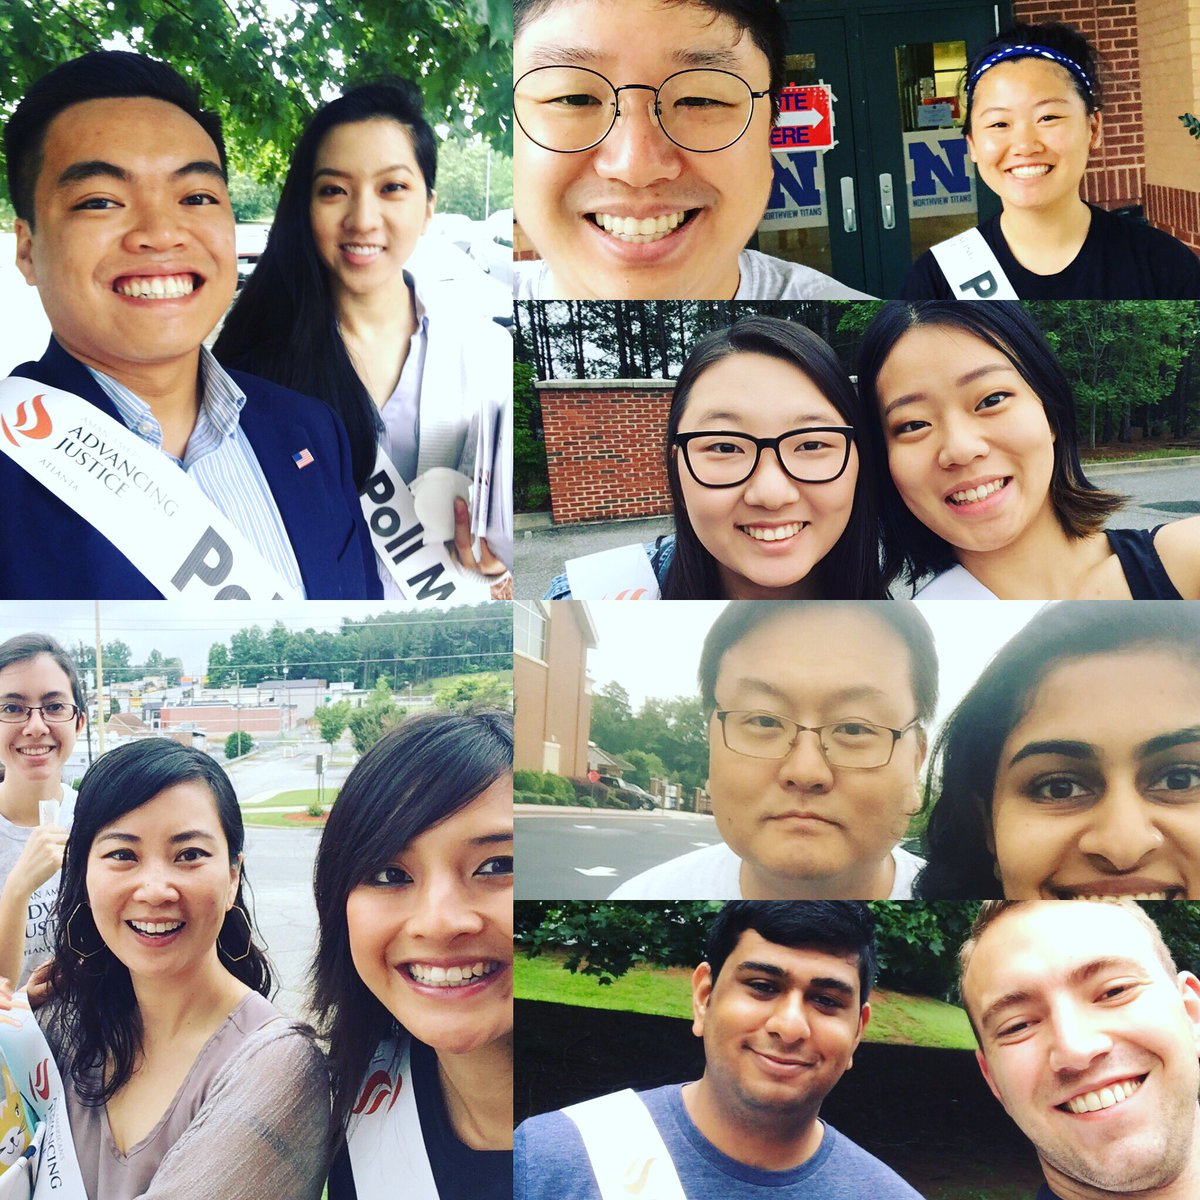 @AAAJ_Atlanta staff &amp; volunteers poll monitoring #cd6 #runoff election! #aapivoices #govote #advancingjustice<br>http://pic.twitter.com/U7apUGPZys